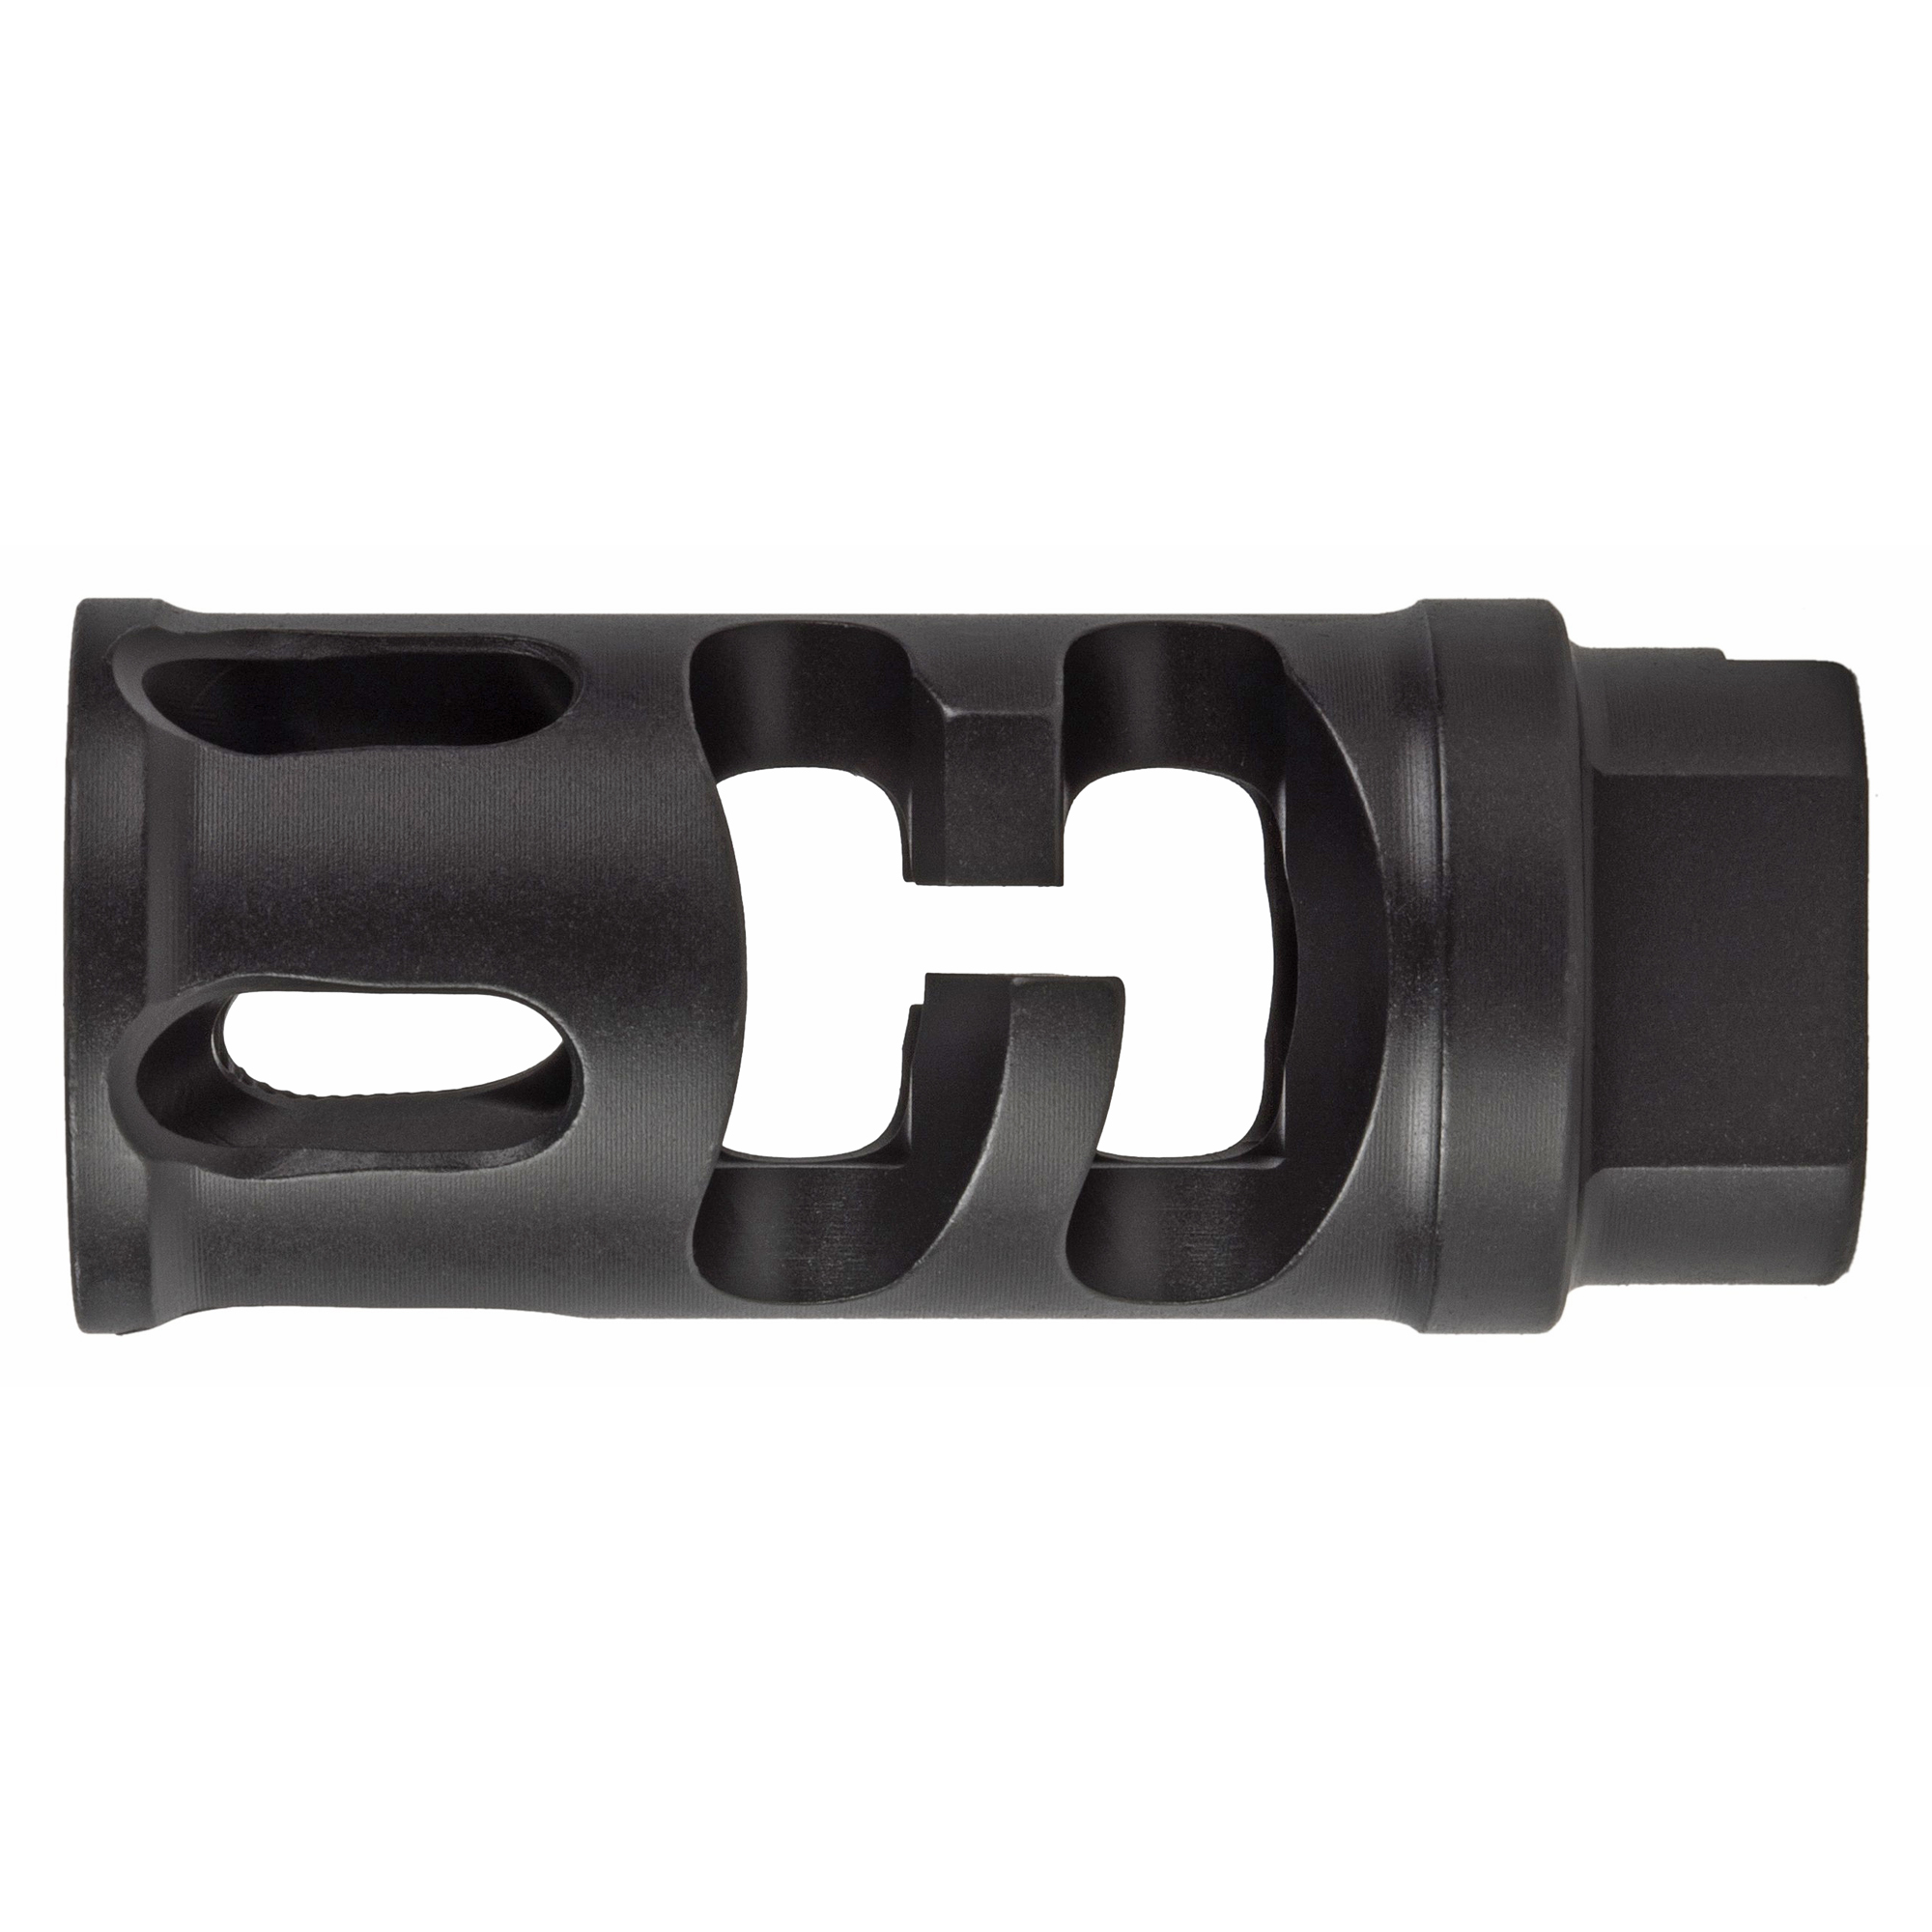 "The patented FSC compensator was designed to be an effective compensator for shooters in all situations. Offering recoil reduction as a primary function"" and flash suppression as a secondary function"" the FSC is one of the most popular PWS compensators on the market. The unique port designs effectively keep flash out of optics and line of sight"" while also reducing the distracting overpressure that is felt with many compensators."